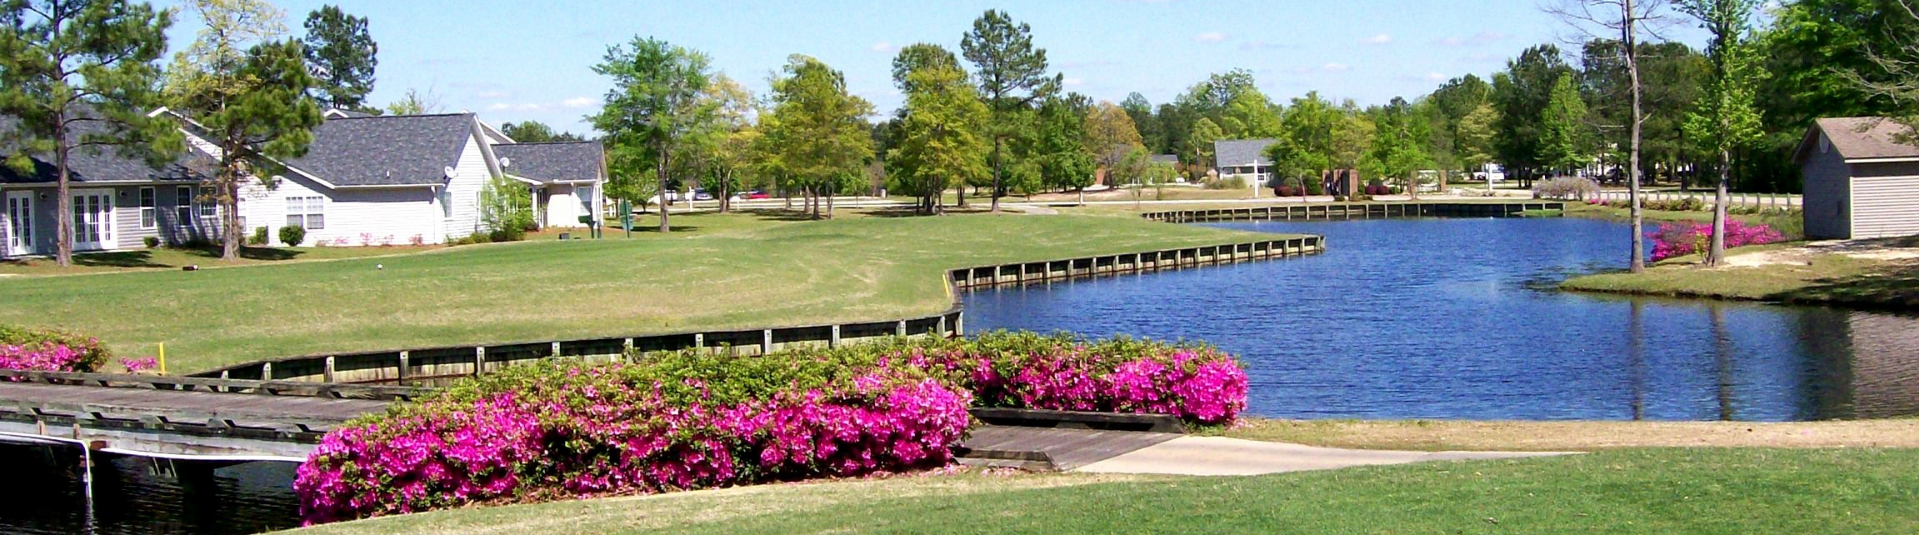 Azaleas line a bridge over a pond at Wyboo Golf Club